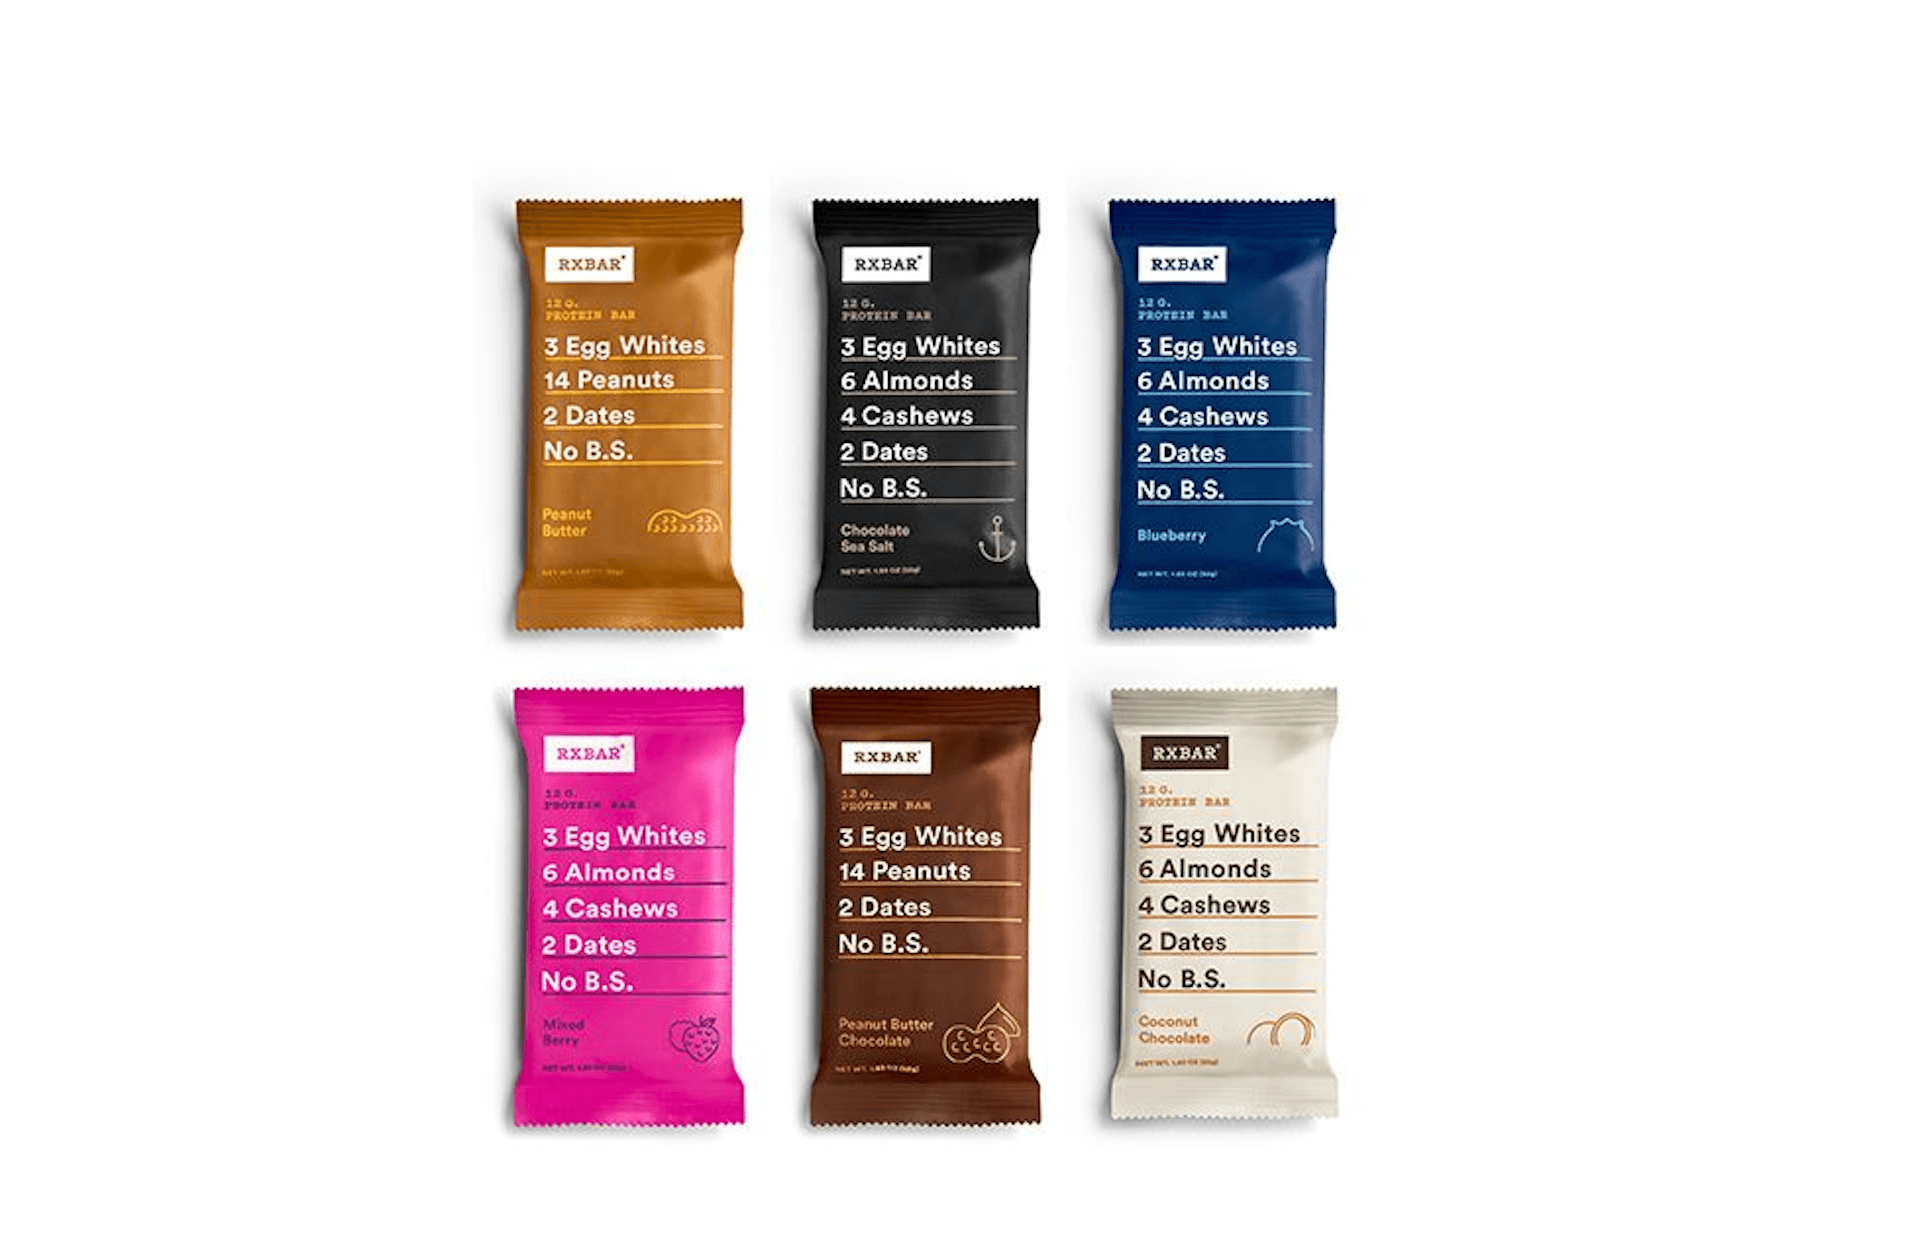 Kellogg to buy protein bar maker RXBar for $600 million